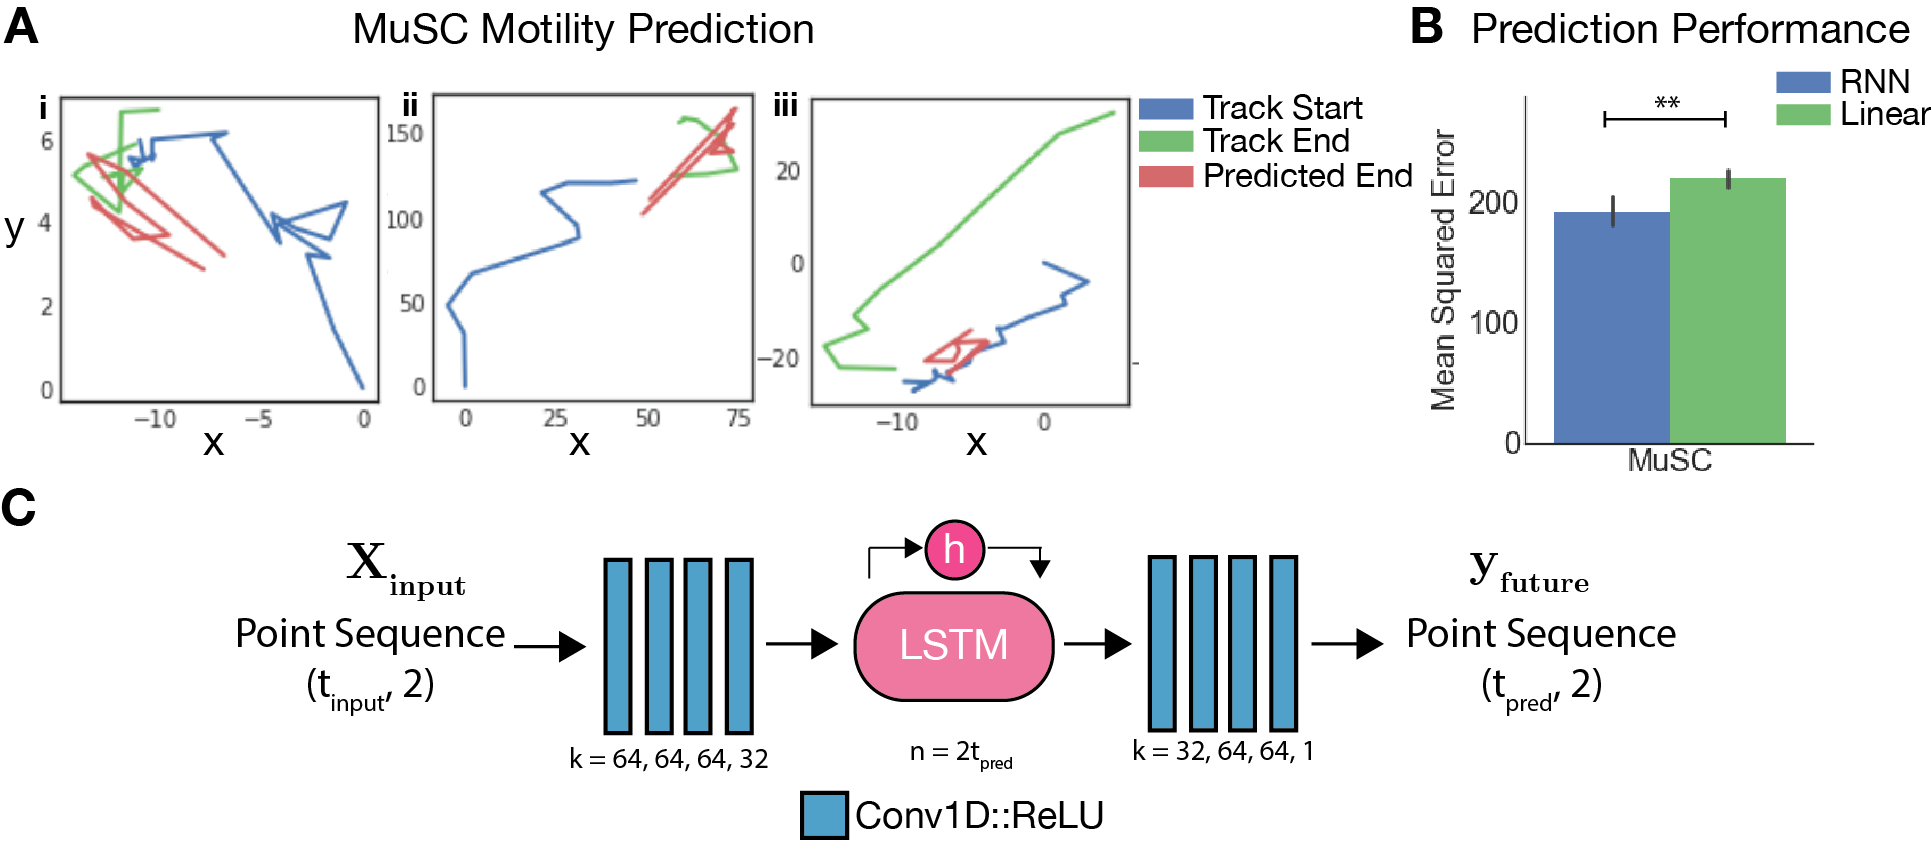 Cell motility prediction RNNs.